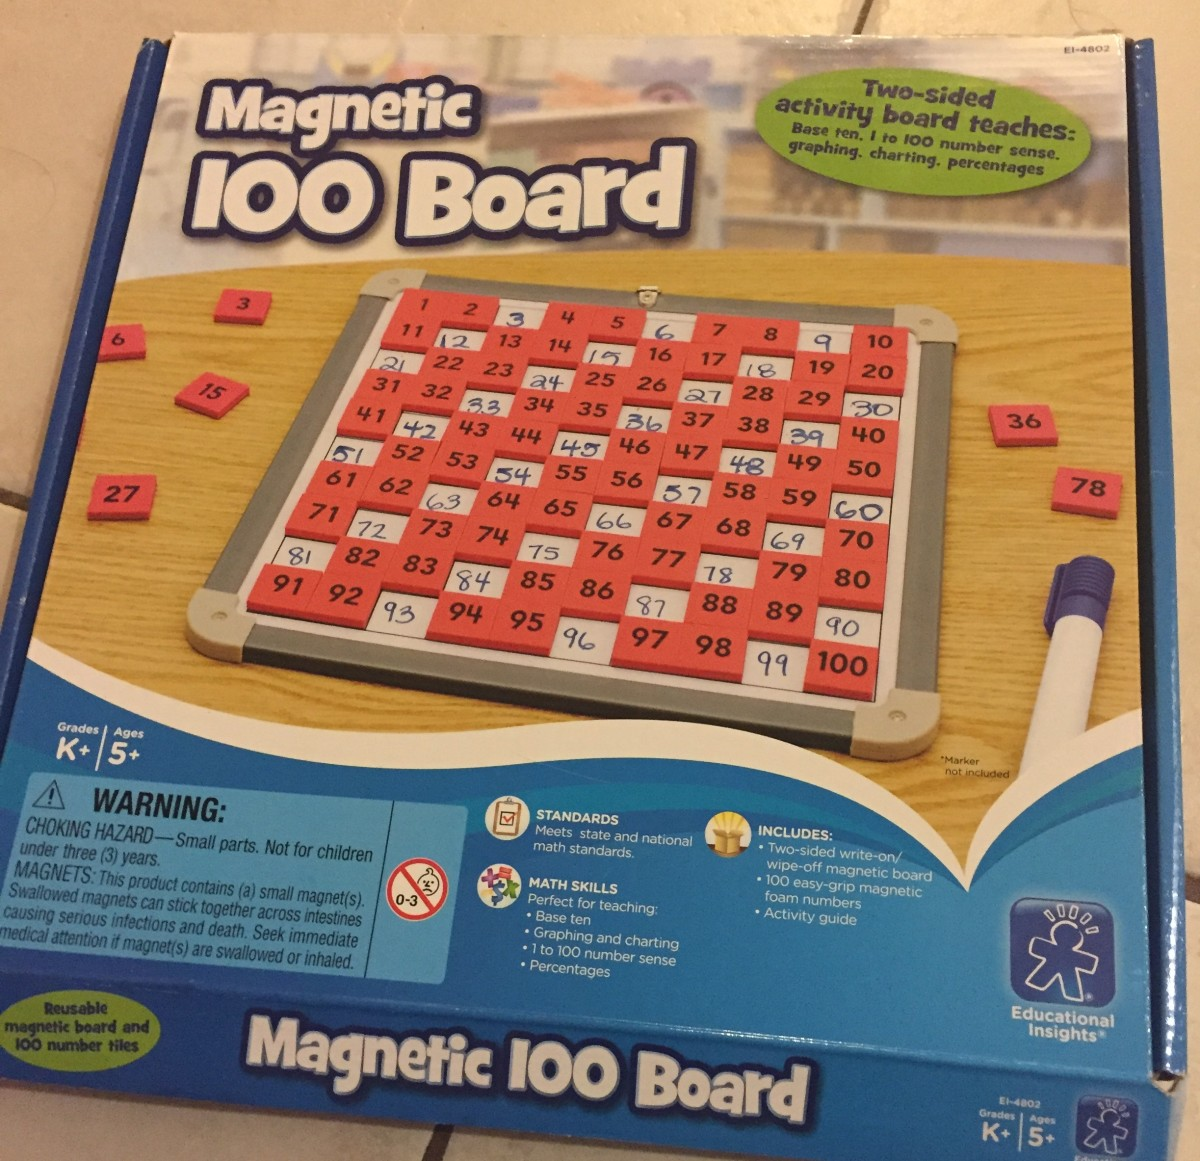 Educational Insights Magnetic 100 Board Review: Teaching Place Value and Number Sense